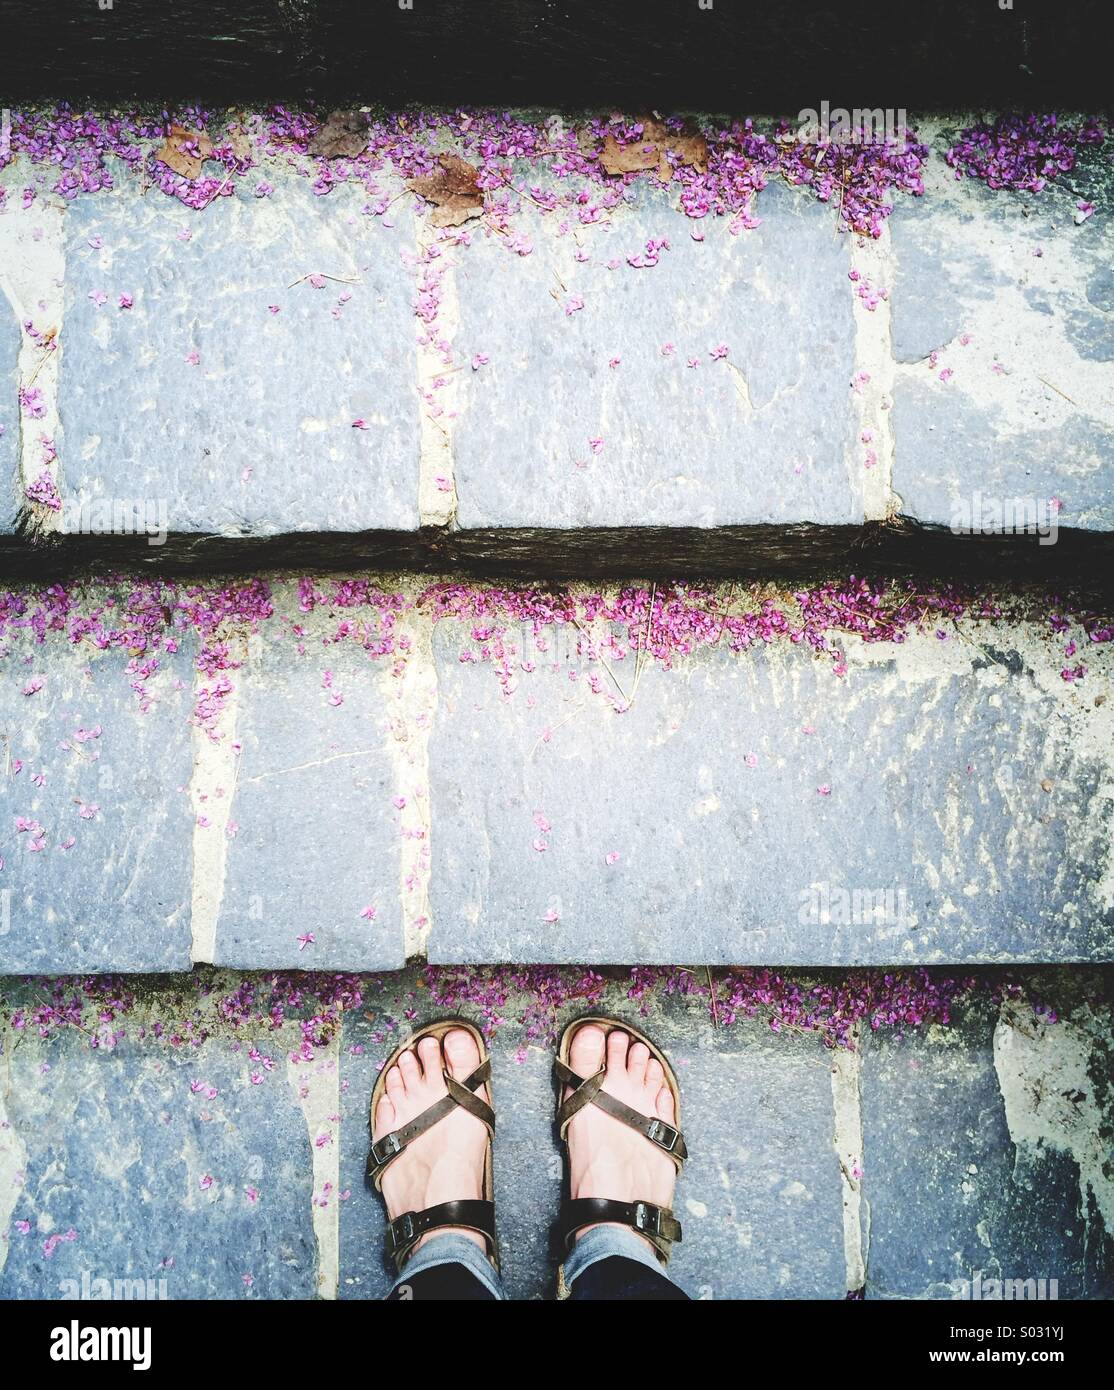 Feet on sandals on slate steps with redbud petals. - Stock Image